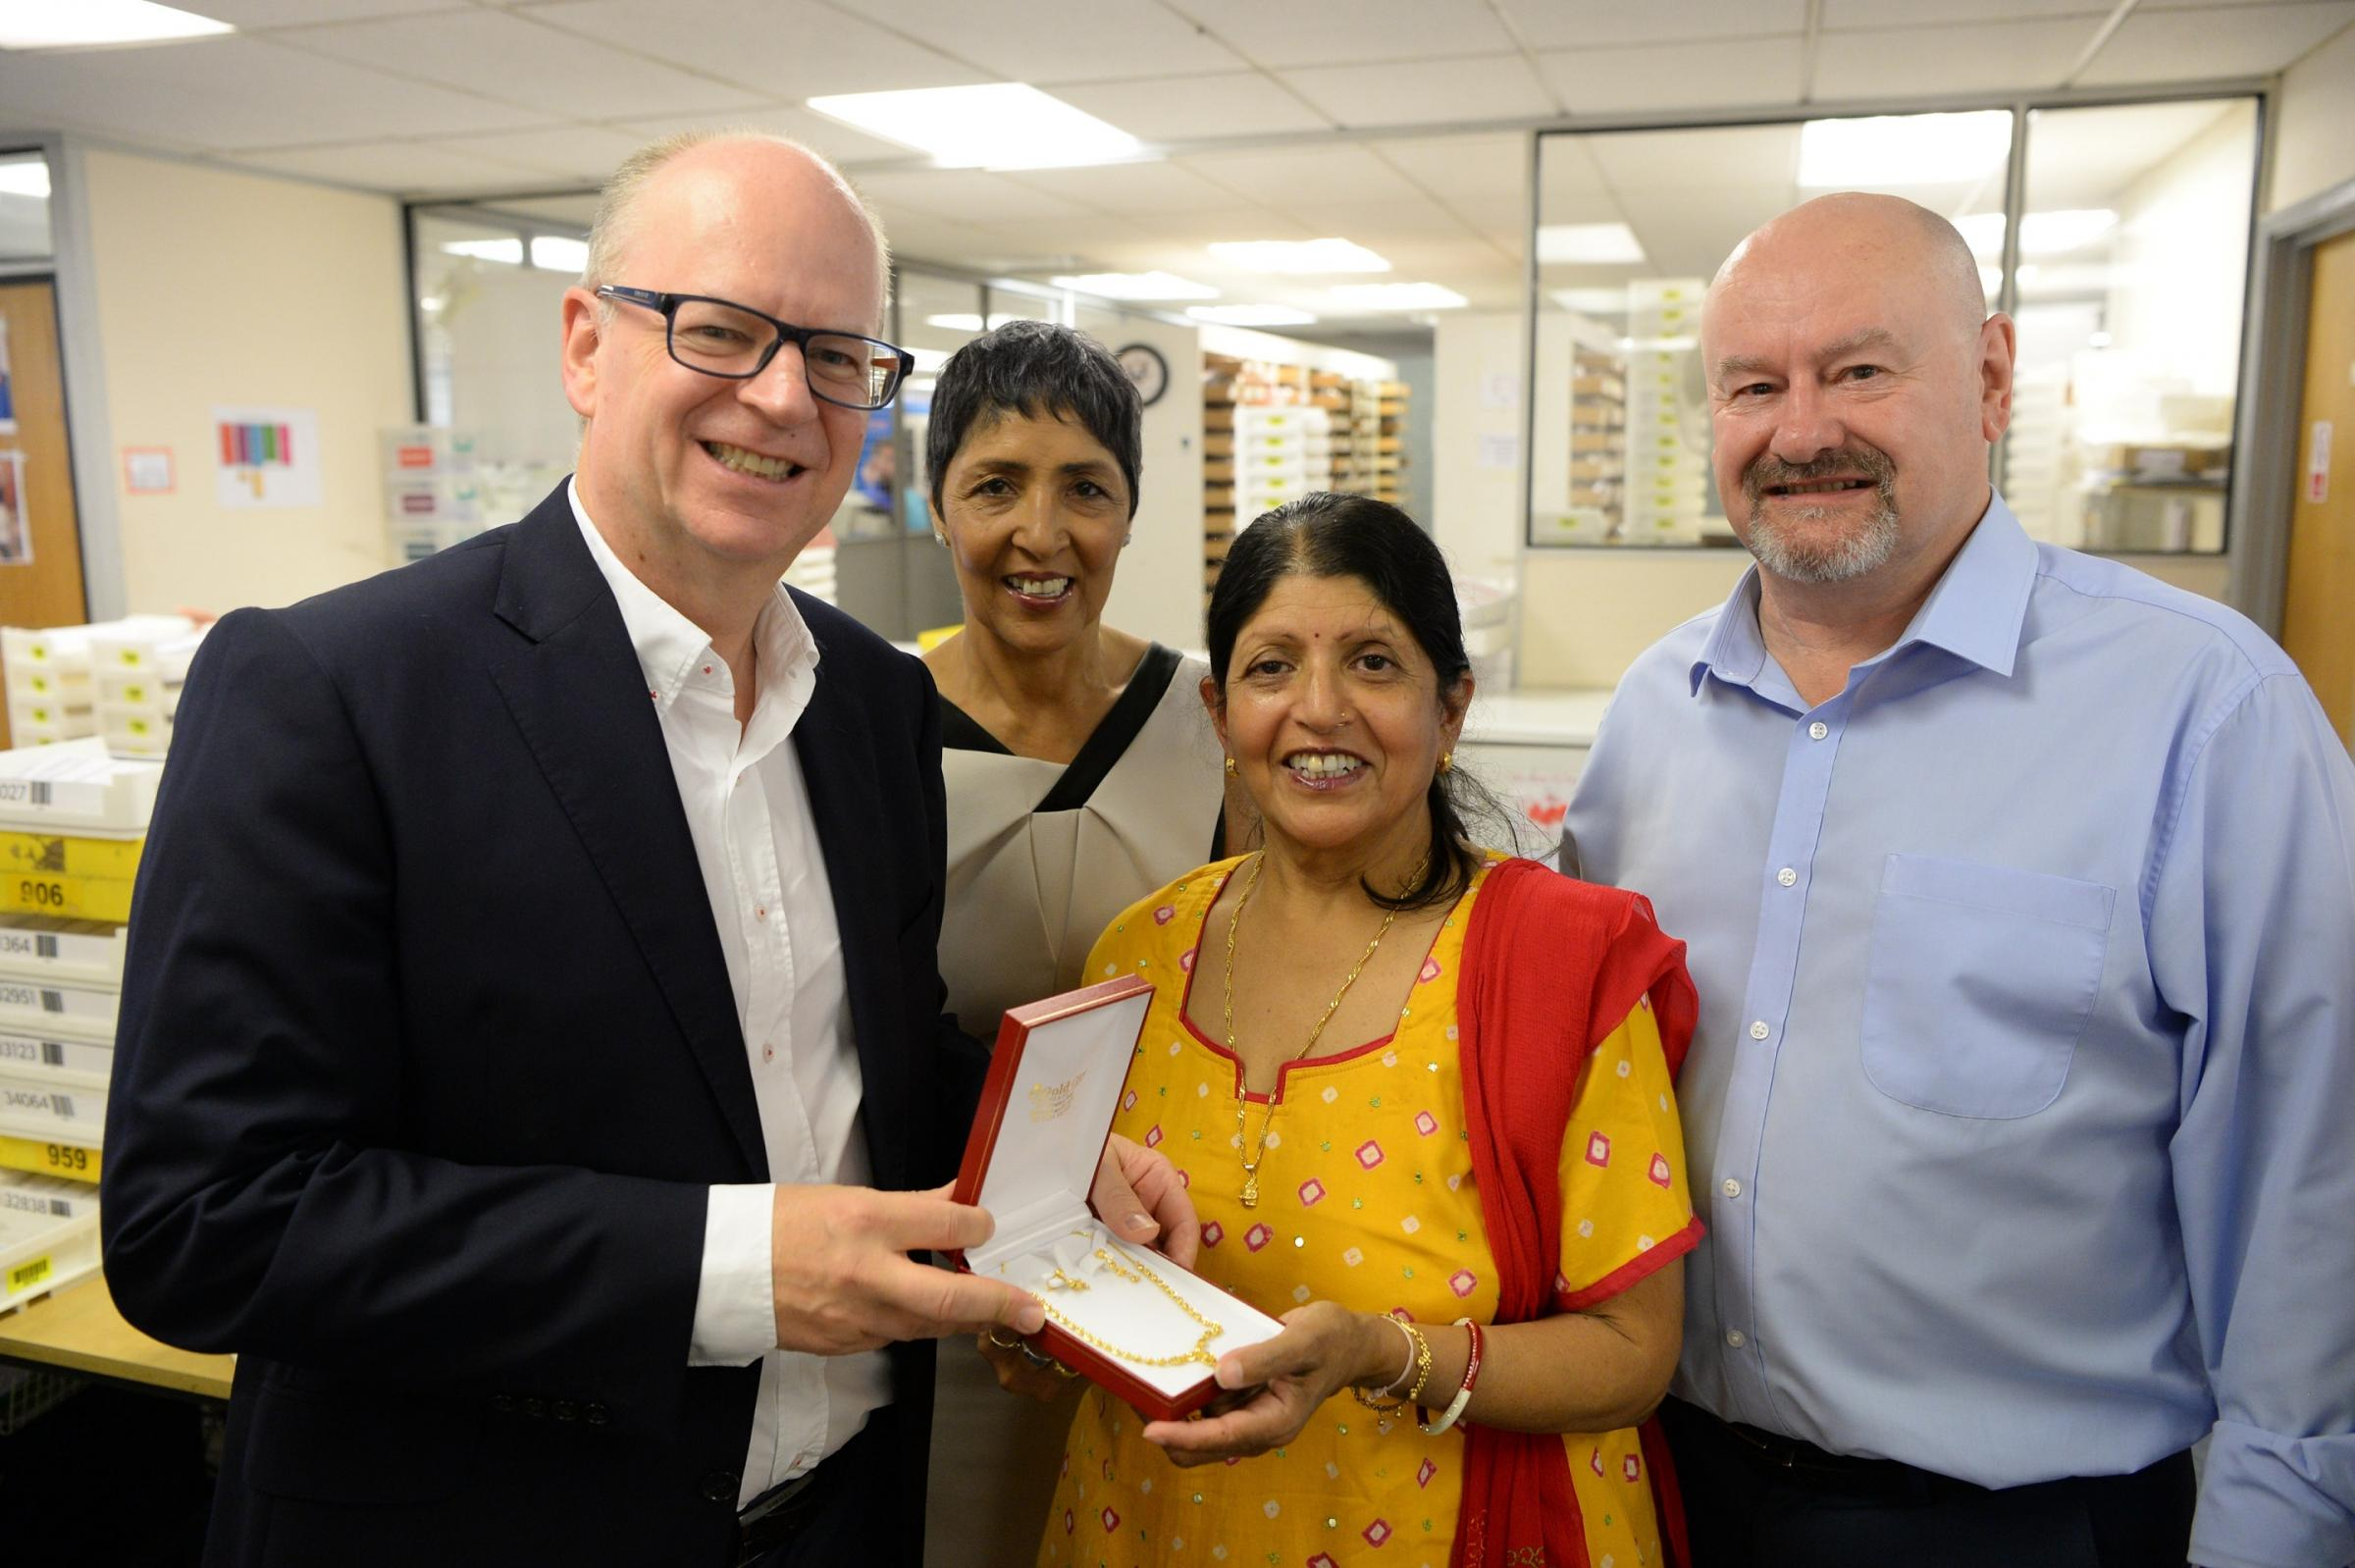 Jashumati Lad receiving her retirement gift from Scrivens director Mark Georgevic, alongside Jeet Saimbi, professional services and training director at Scrivens, and Gary Davies, general manager at Mersona.